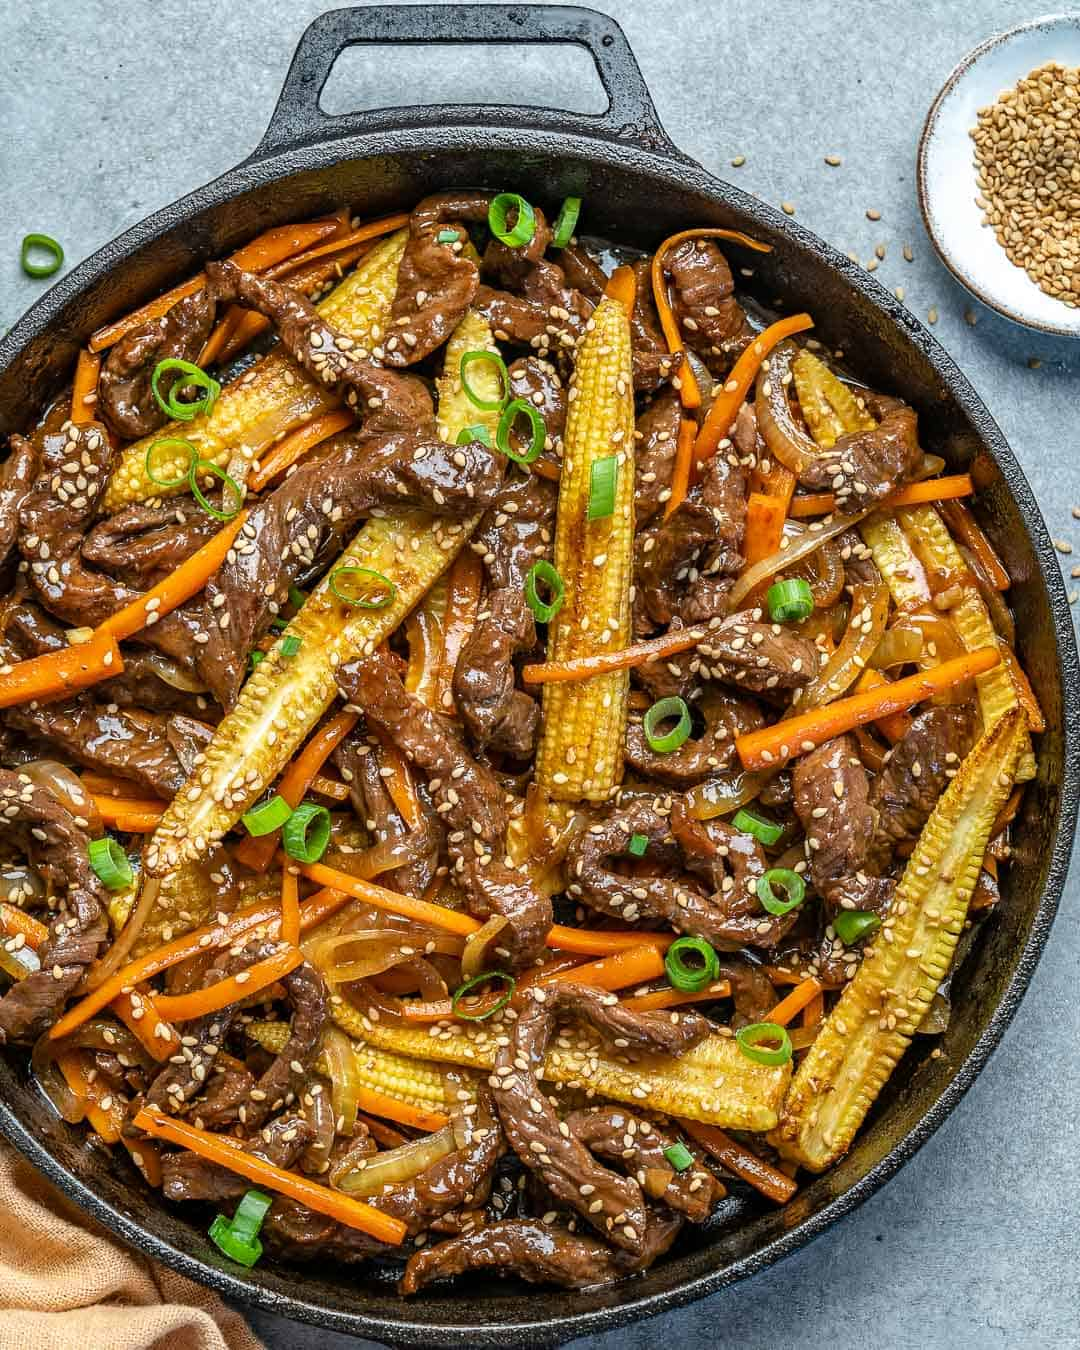 beef stir fry in a black skillet